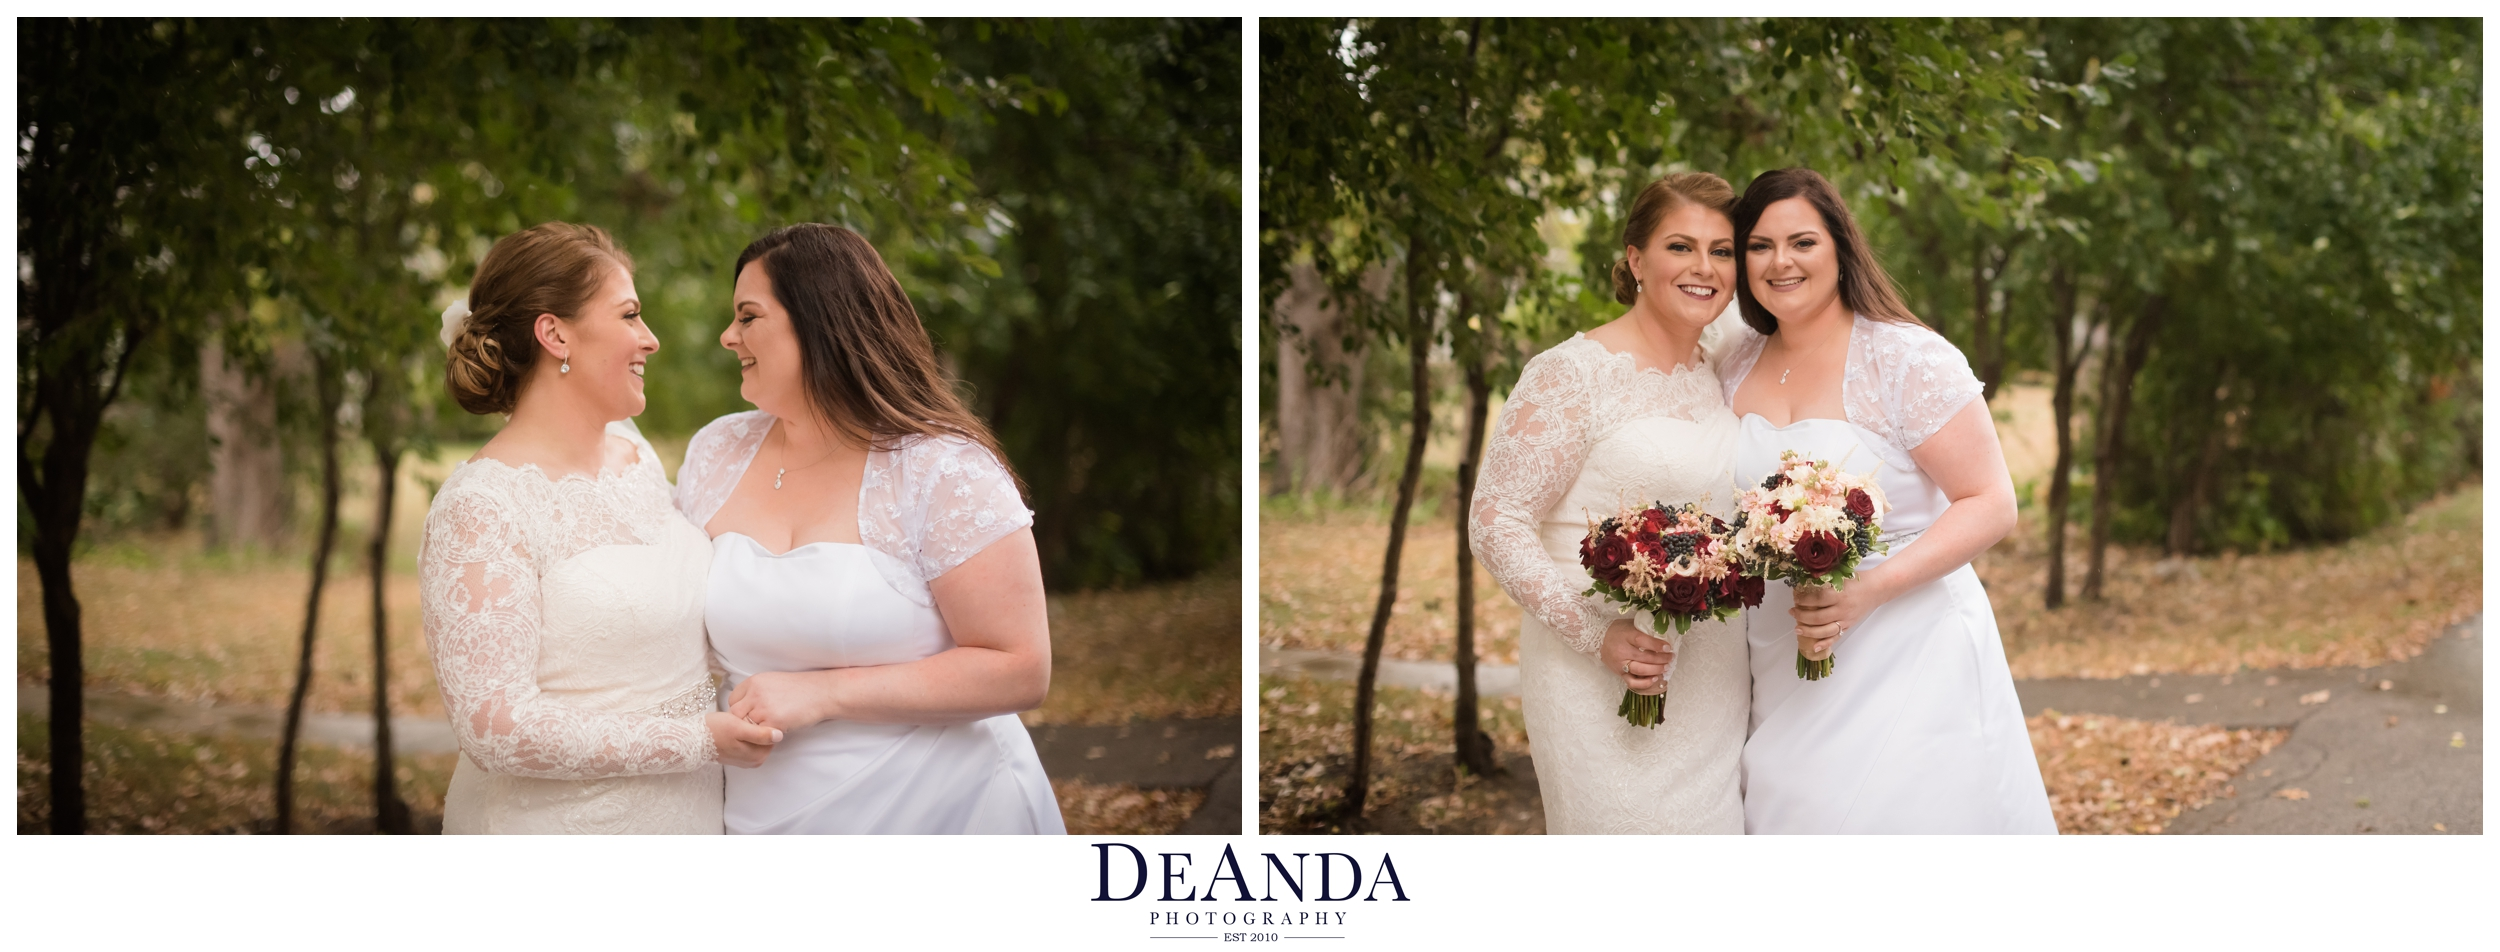 beautiful brides portrait of same sex couple in front of green trees